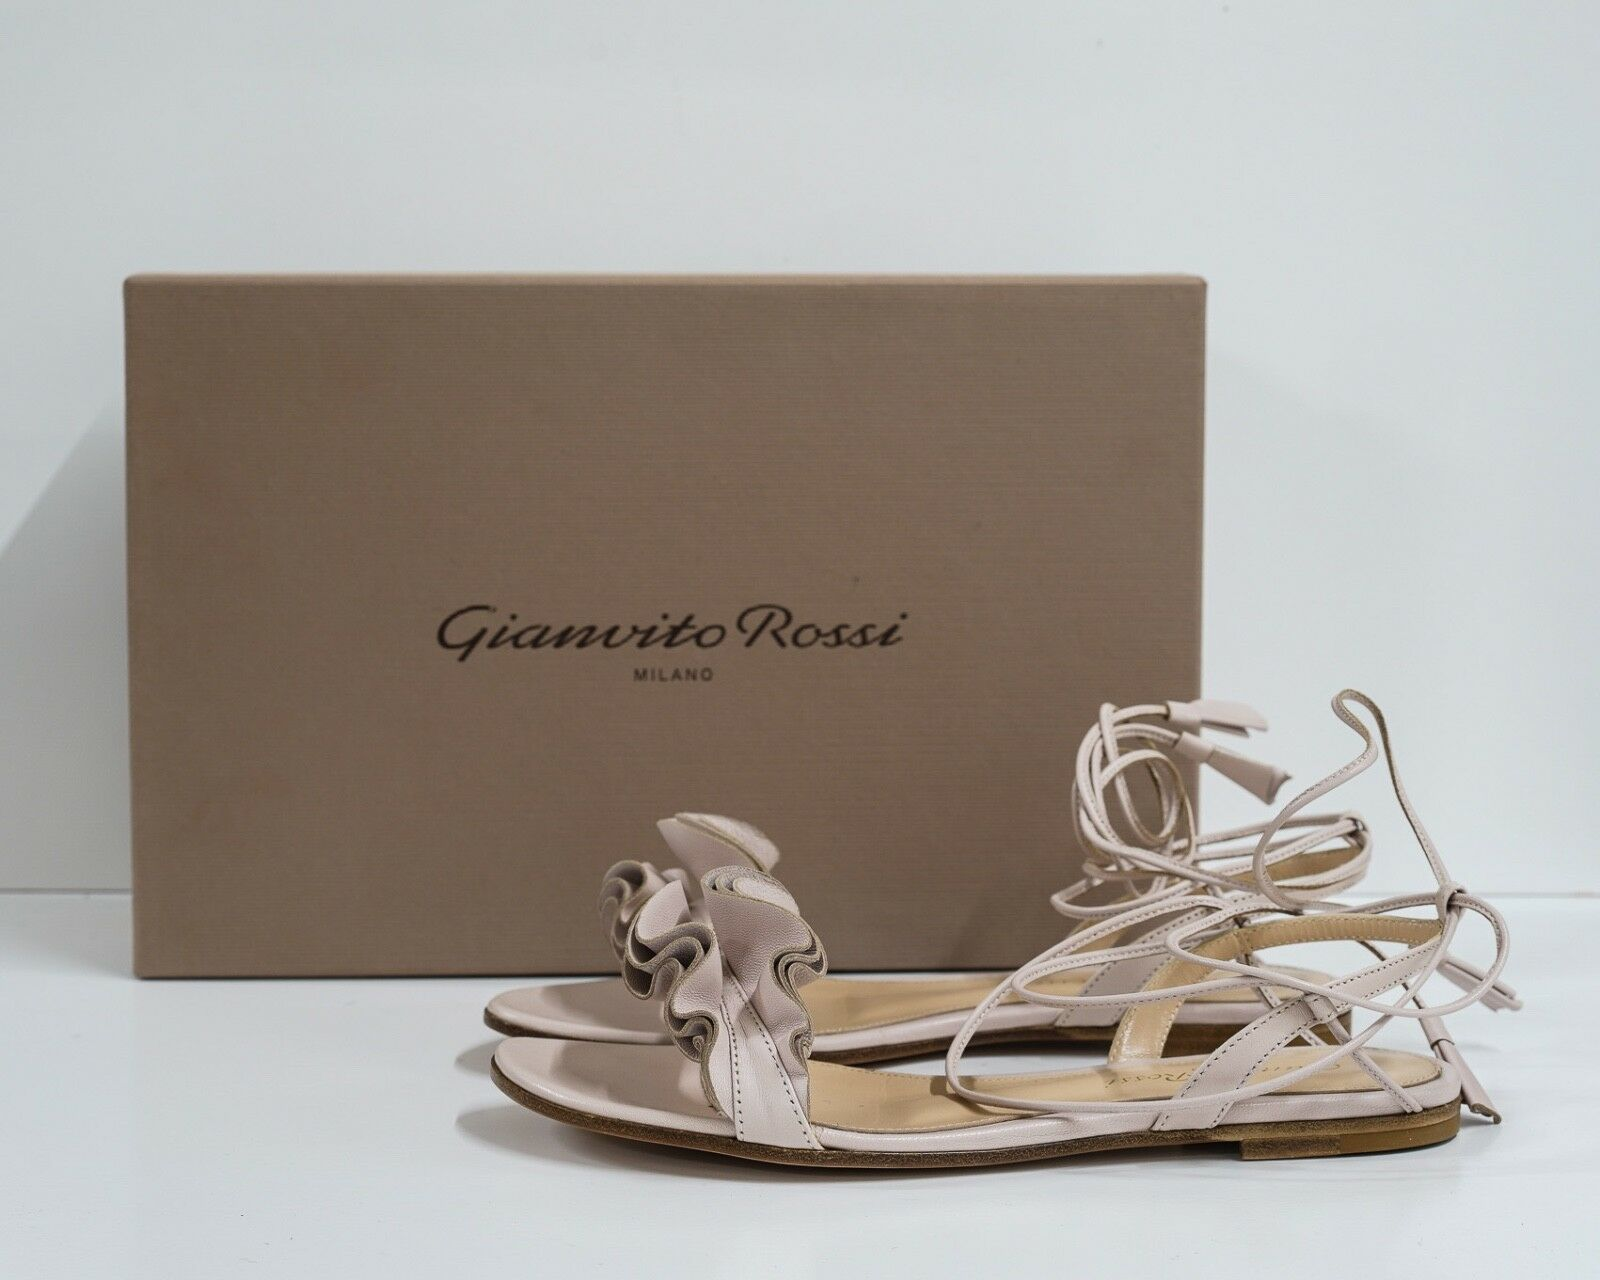 New in Box Gianvito Rossi Women's pink Flat Leather Sandal Sandal Sandal Size 35 ae867e